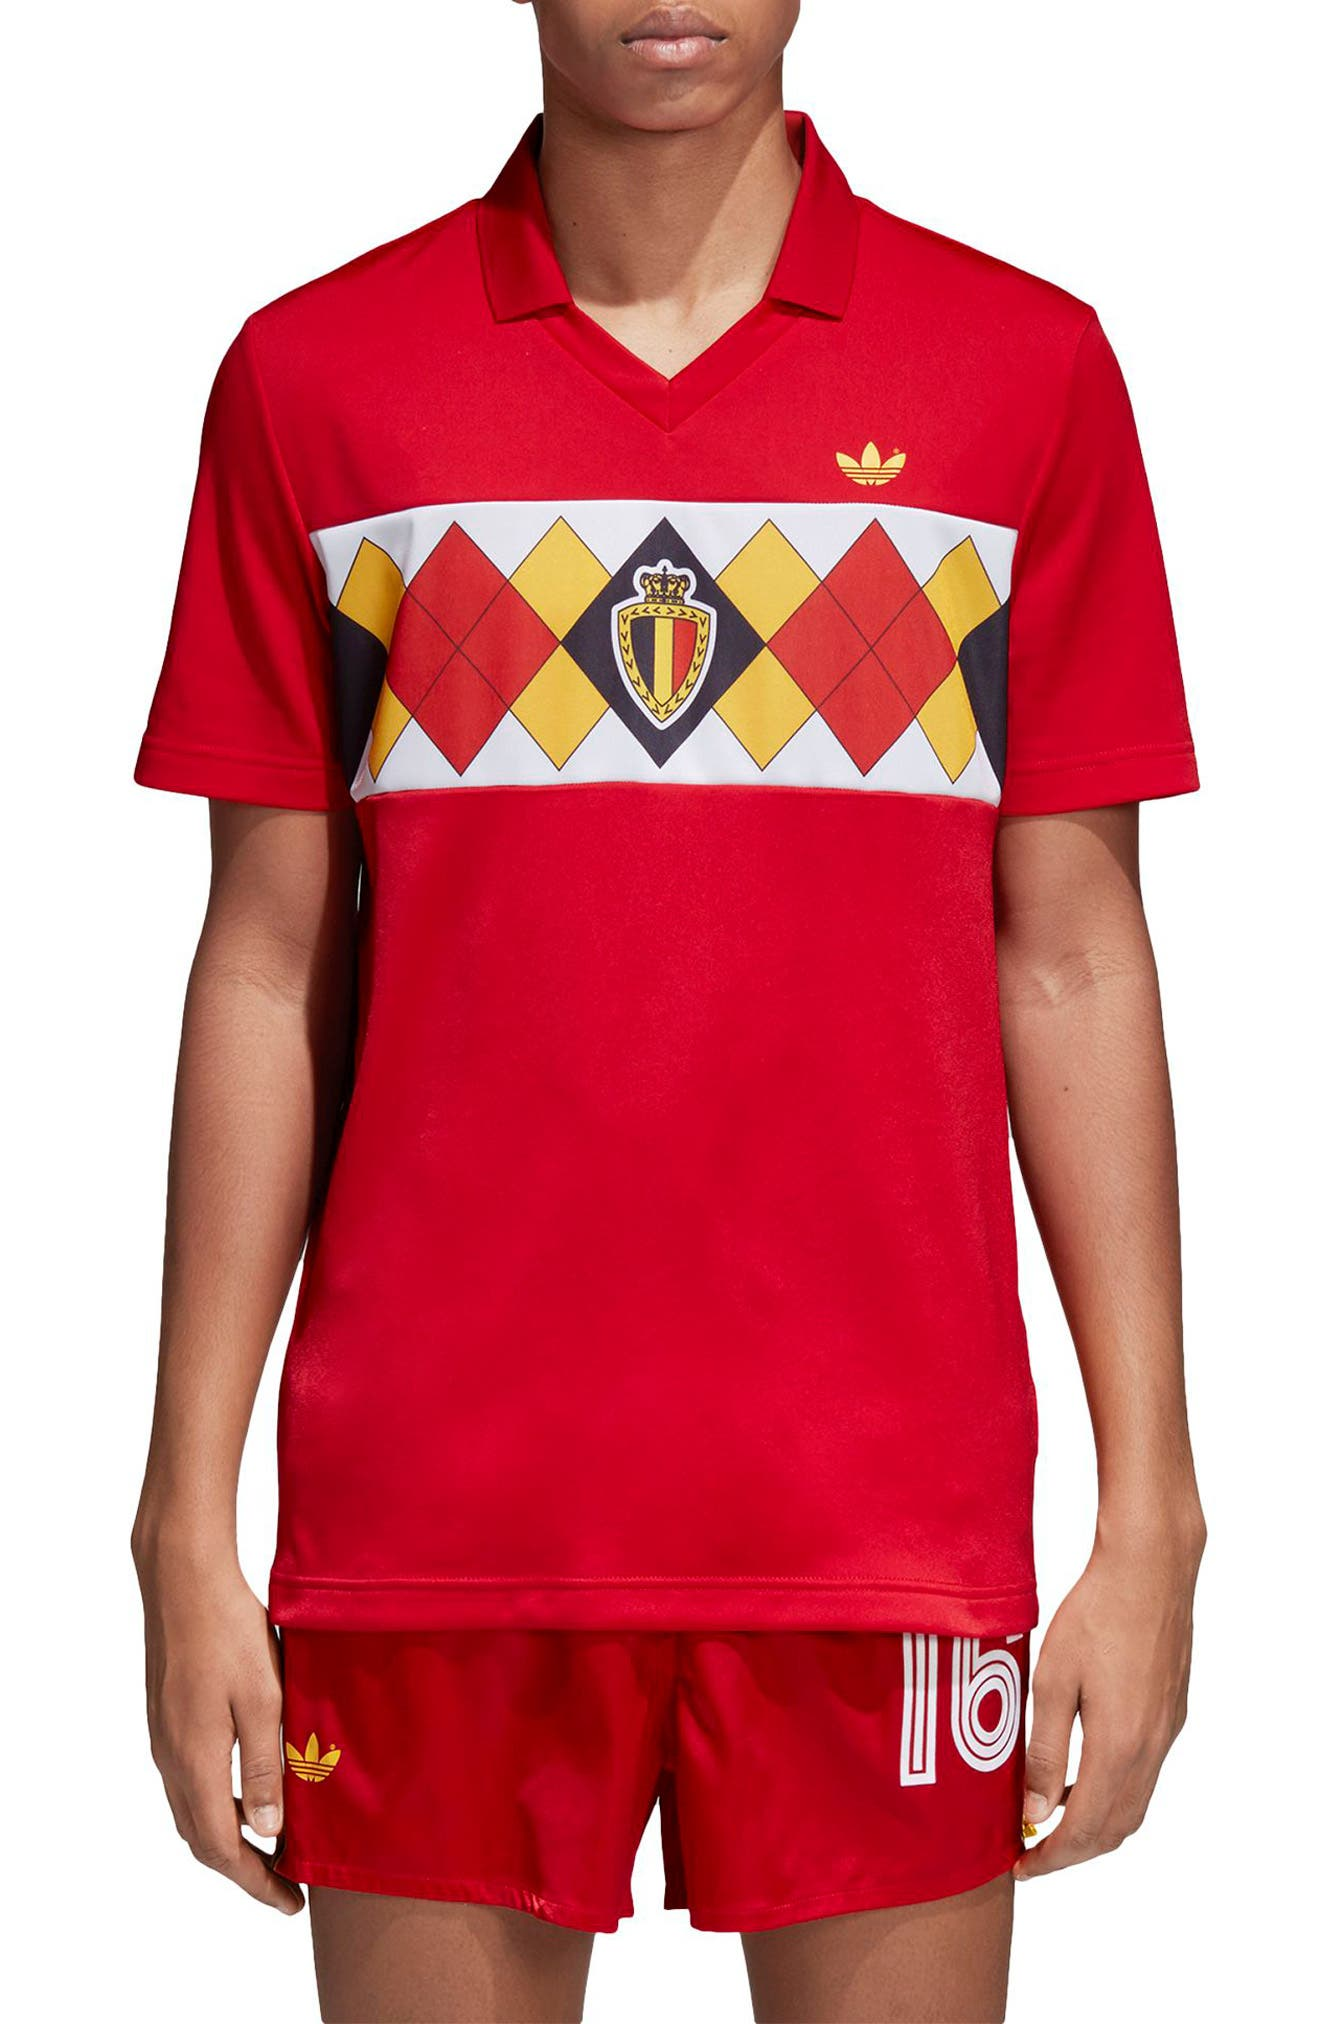 adidas Original Belgium 1984 Soccer Jersey,                         Main,                         color, 601